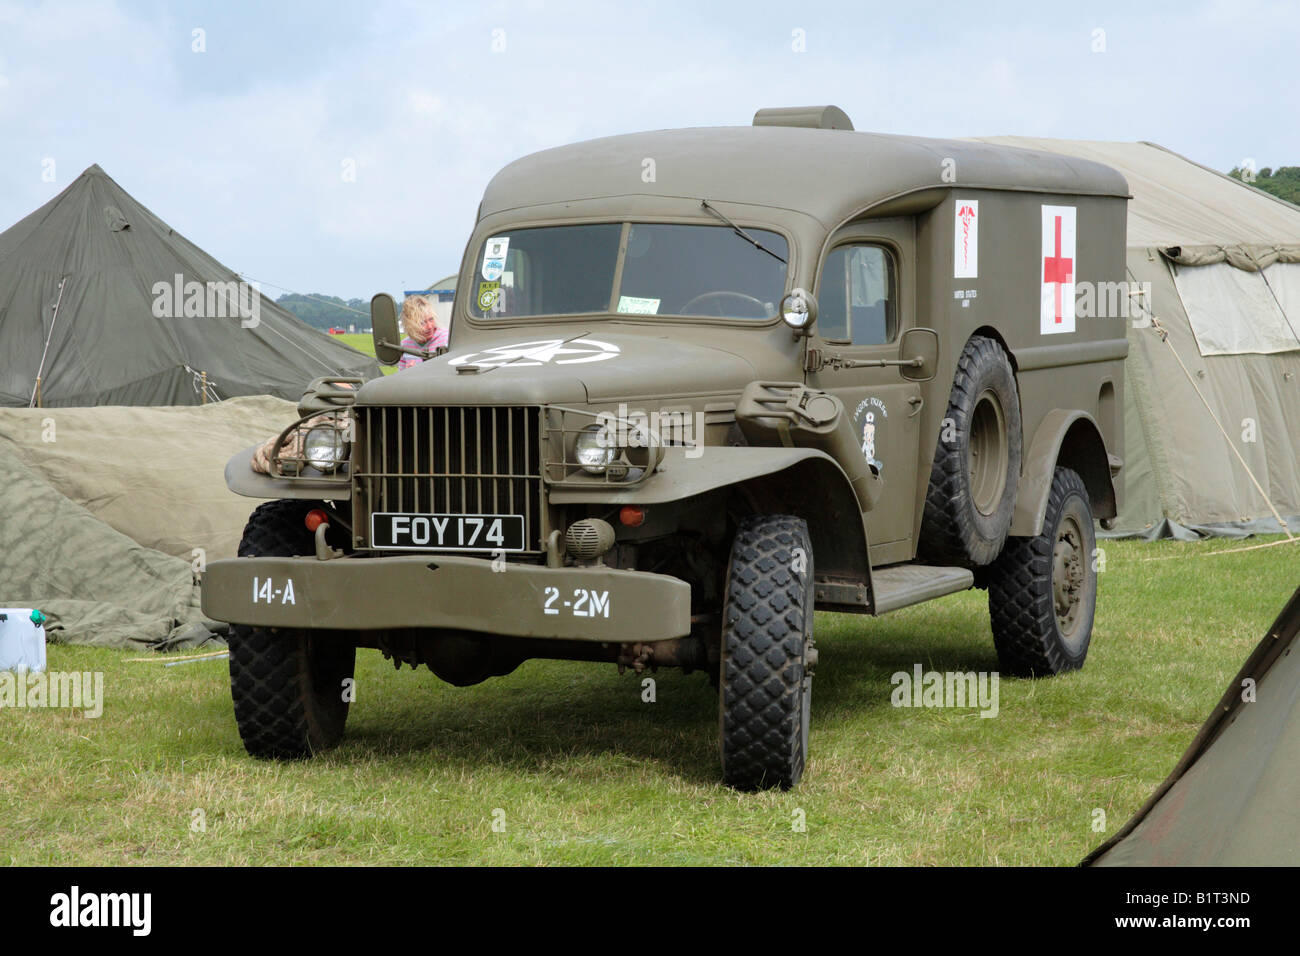 Dodge wc54 wwii 4x4 army military ambulance stock image